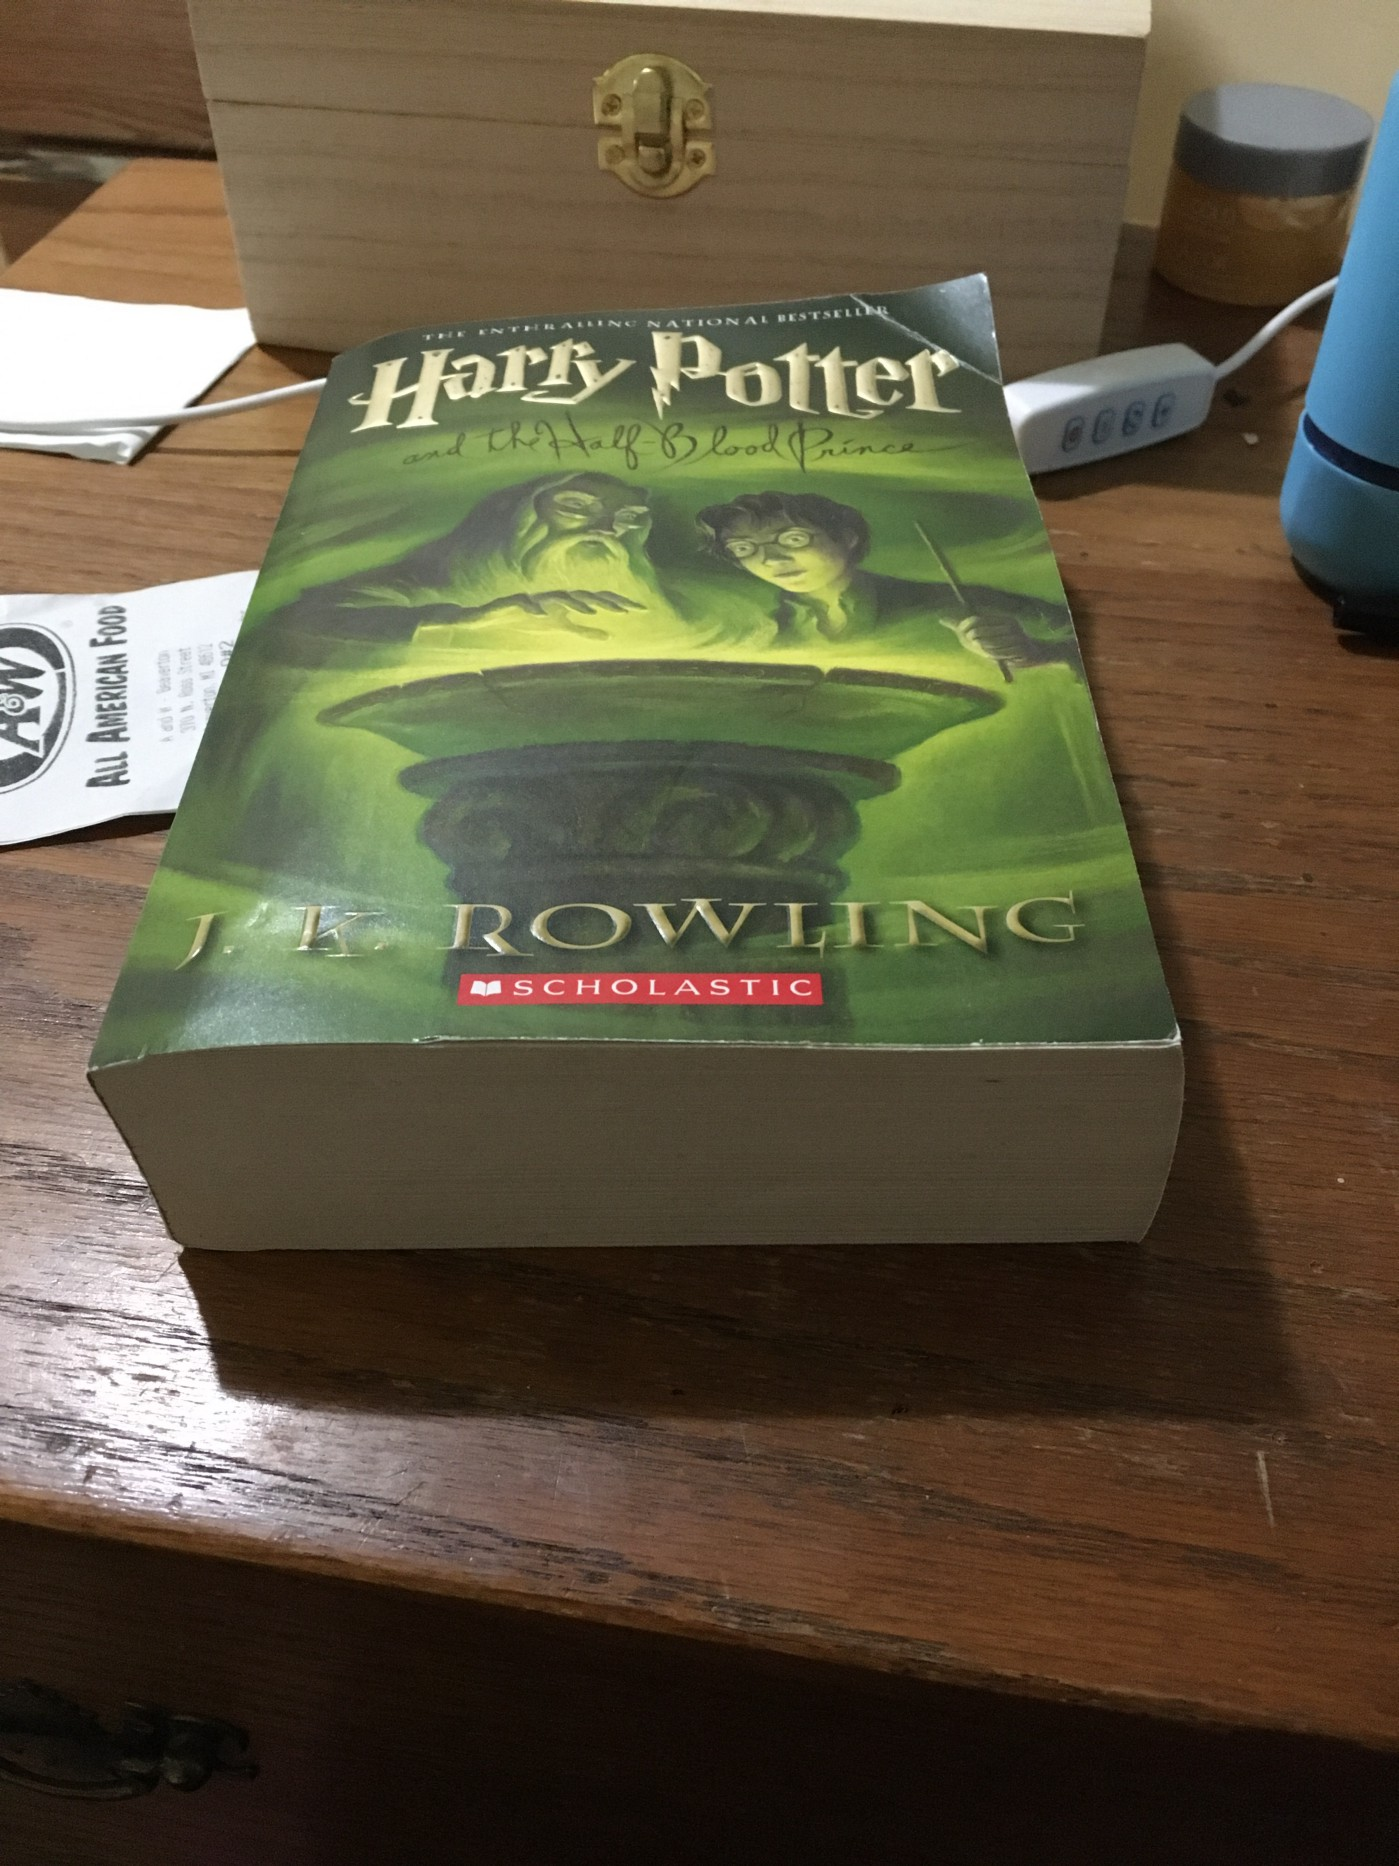 A paperback copy of Harry Potter and the Half-Blood Prince